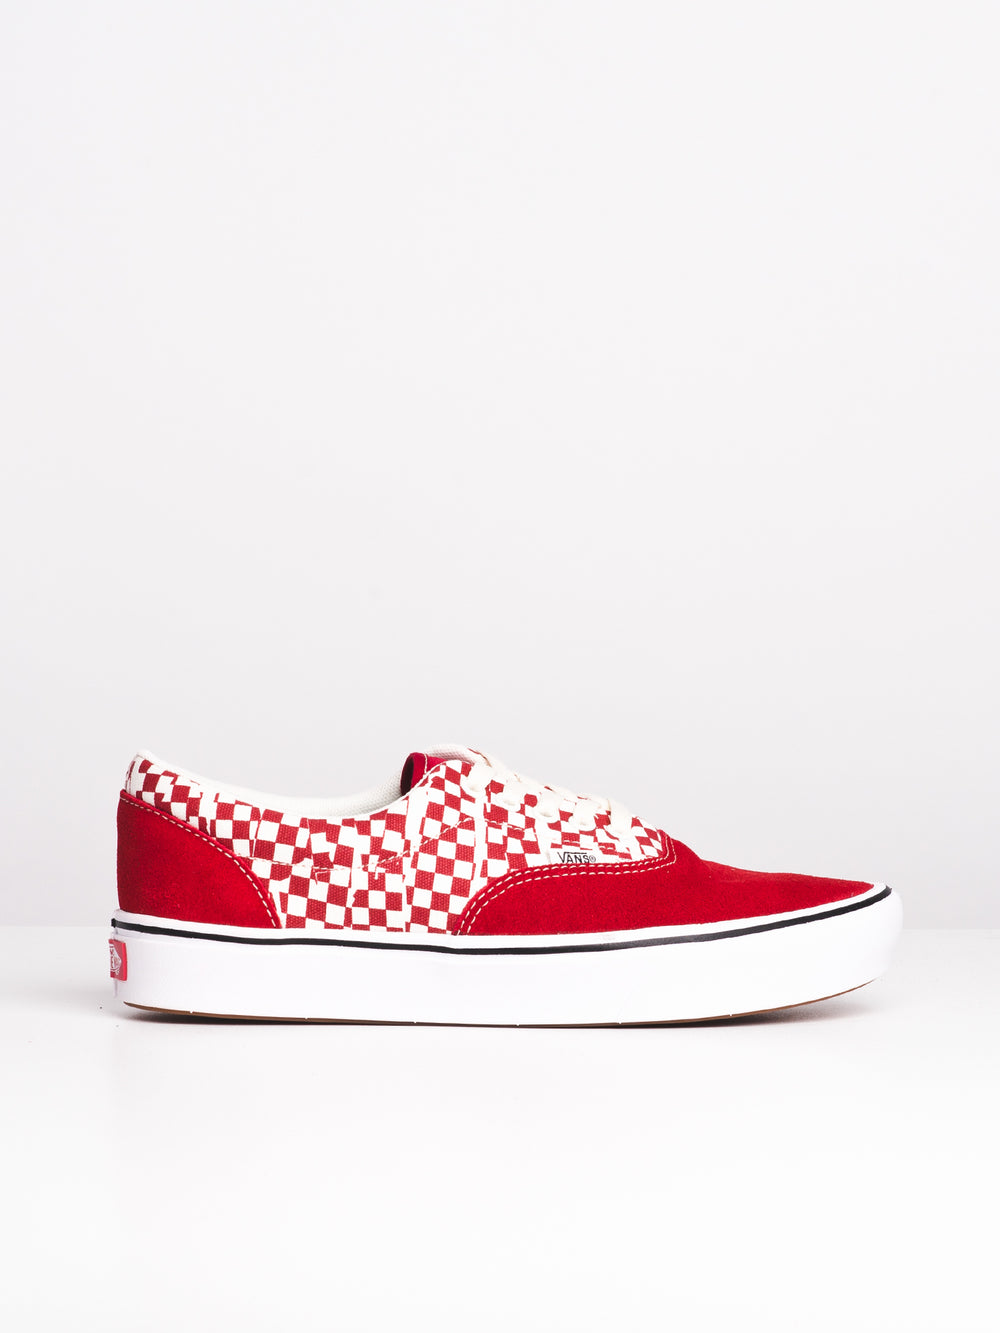 MENS COMFYCUSH ERA - RED/WHT TEAR